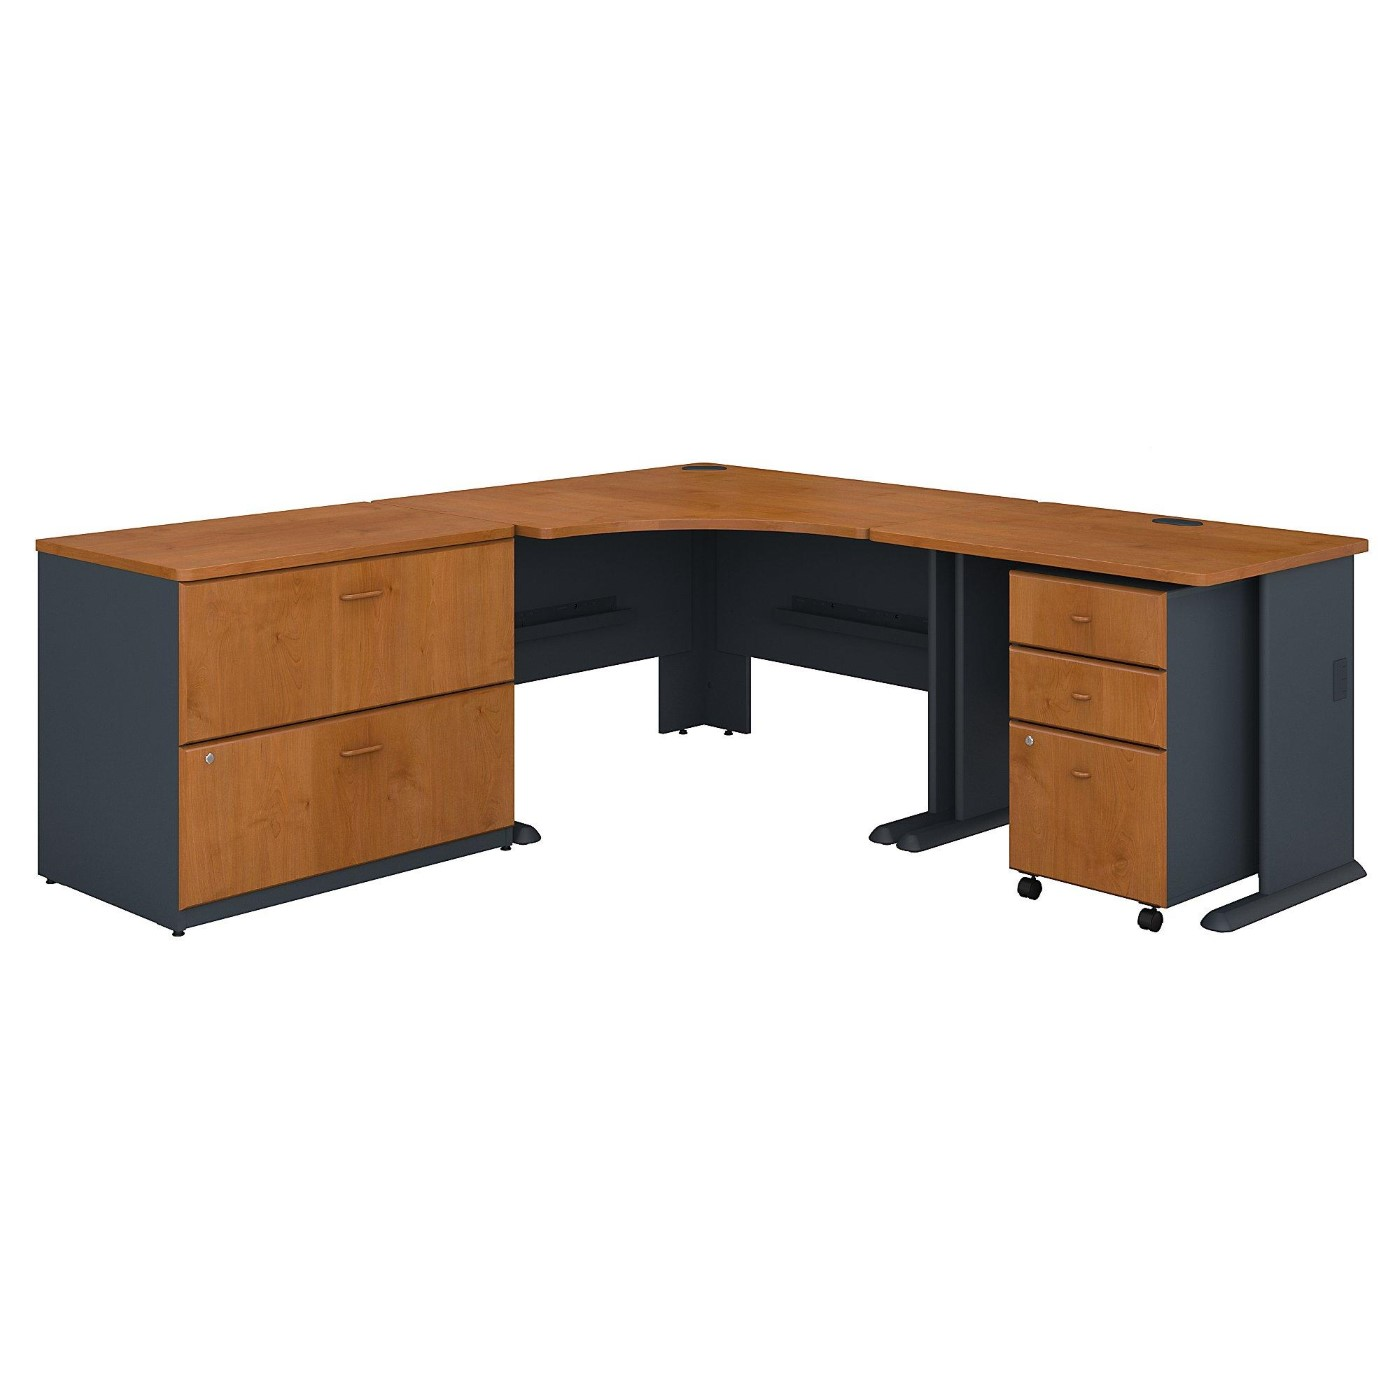 BUSH BUSINESS FURNITURE SERIES A 48W CORNER DESK WITH 36W RETURN AND FILE CABINETS. FREE SHIPPING.  SALE DEDUCT 10% MORE ENTER '10percent' IN COUPON CODE BOX WHILE CHECKING OUT.